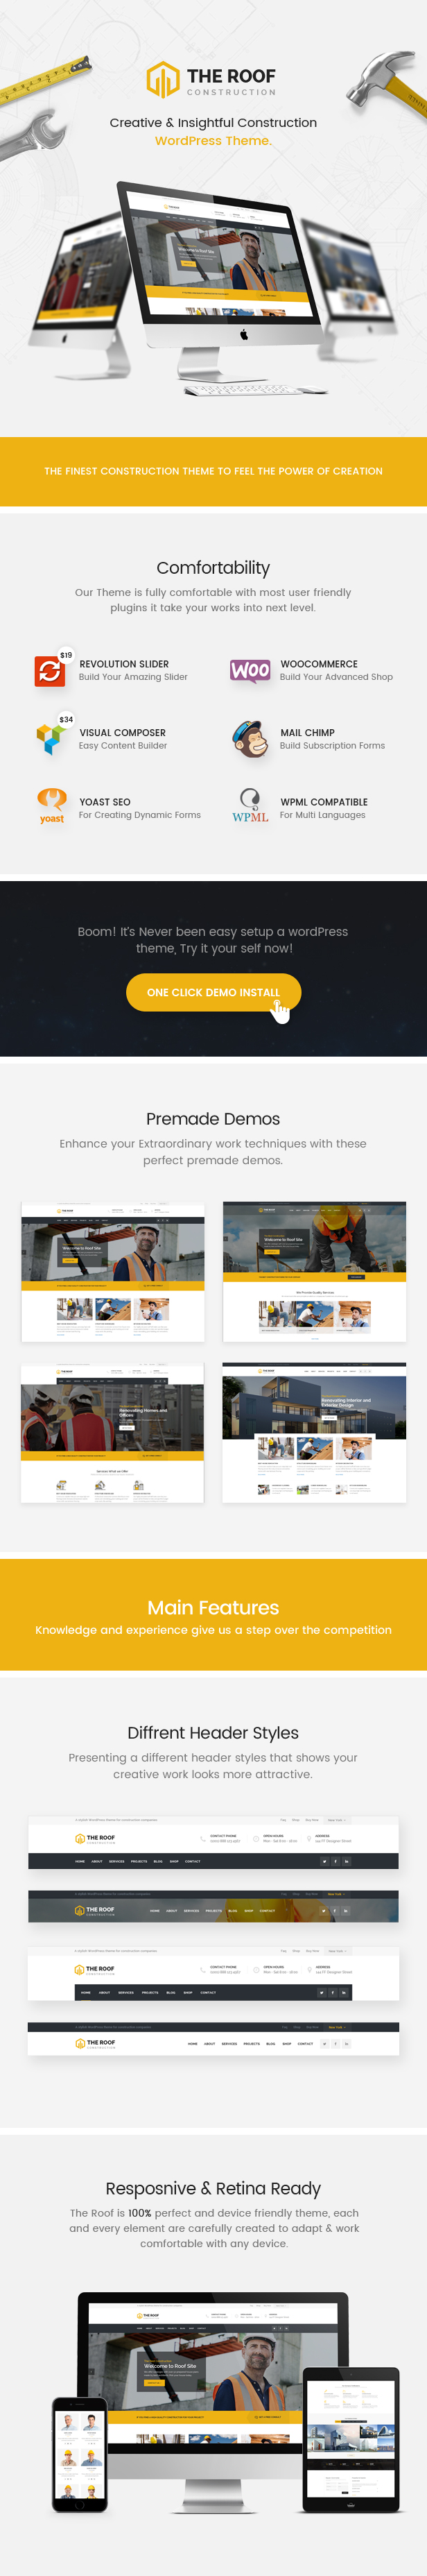 WP Construction, Building Business WordPress Theme Review - Roof